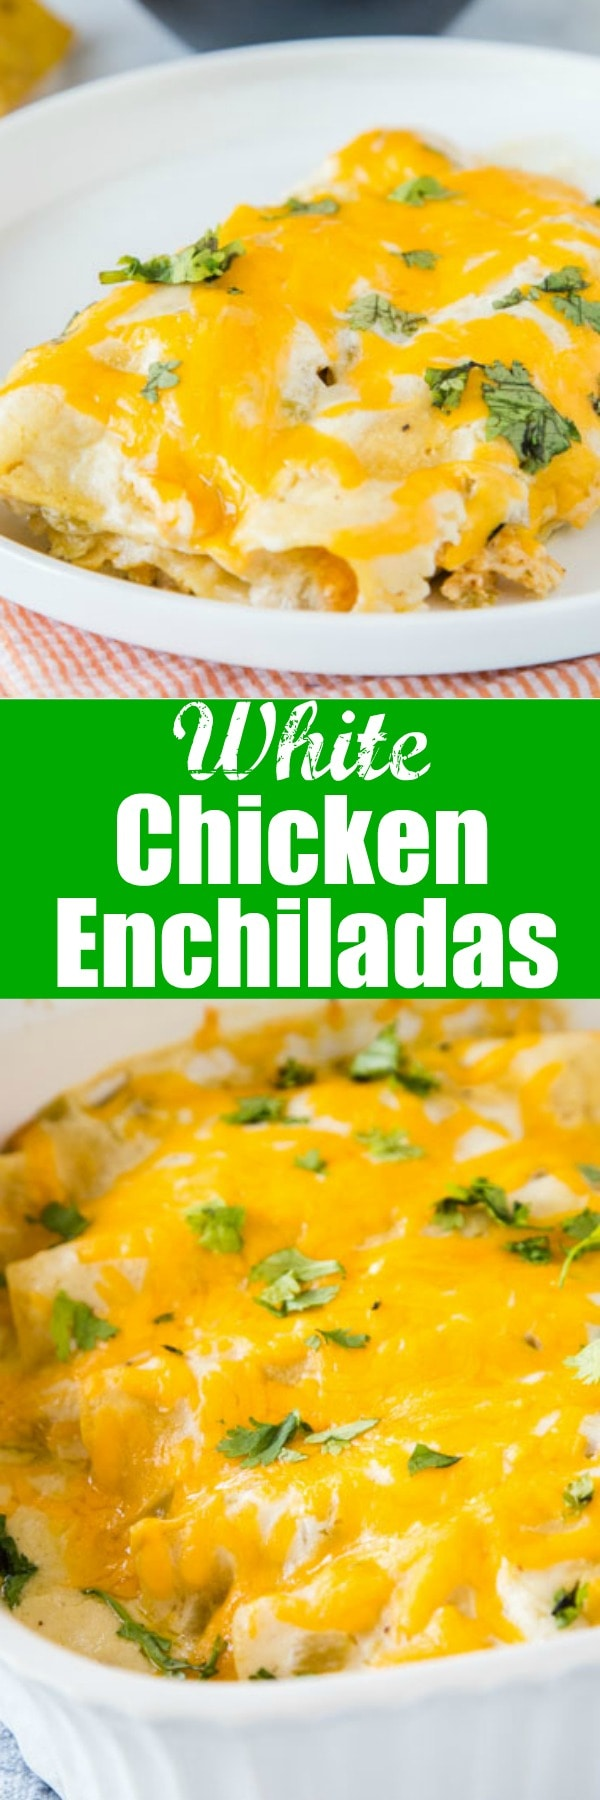 White Chicken Enchiladas - super easy sour cream chicken enchiladas that are made with lots of creamy and tangy sour cream for a delicious white sauce. They are cheesy, full of flavor and great for dinner anytime!